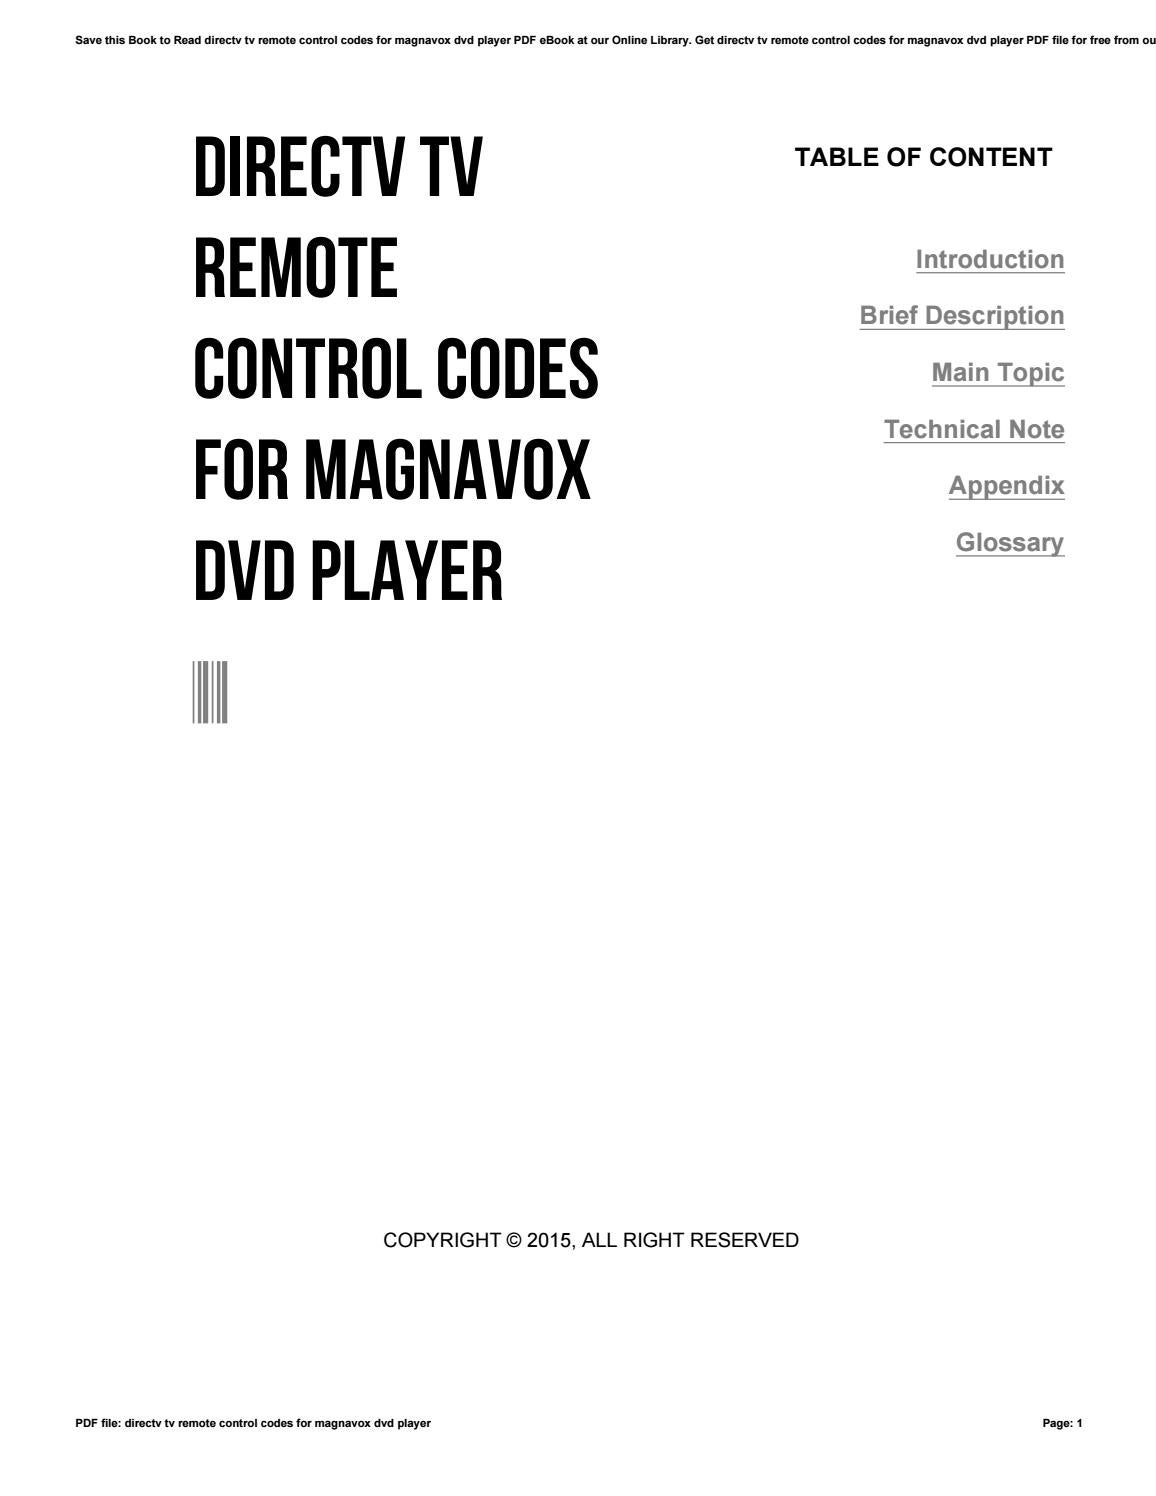 Directv tv remote control codes for magnavox dvd player by